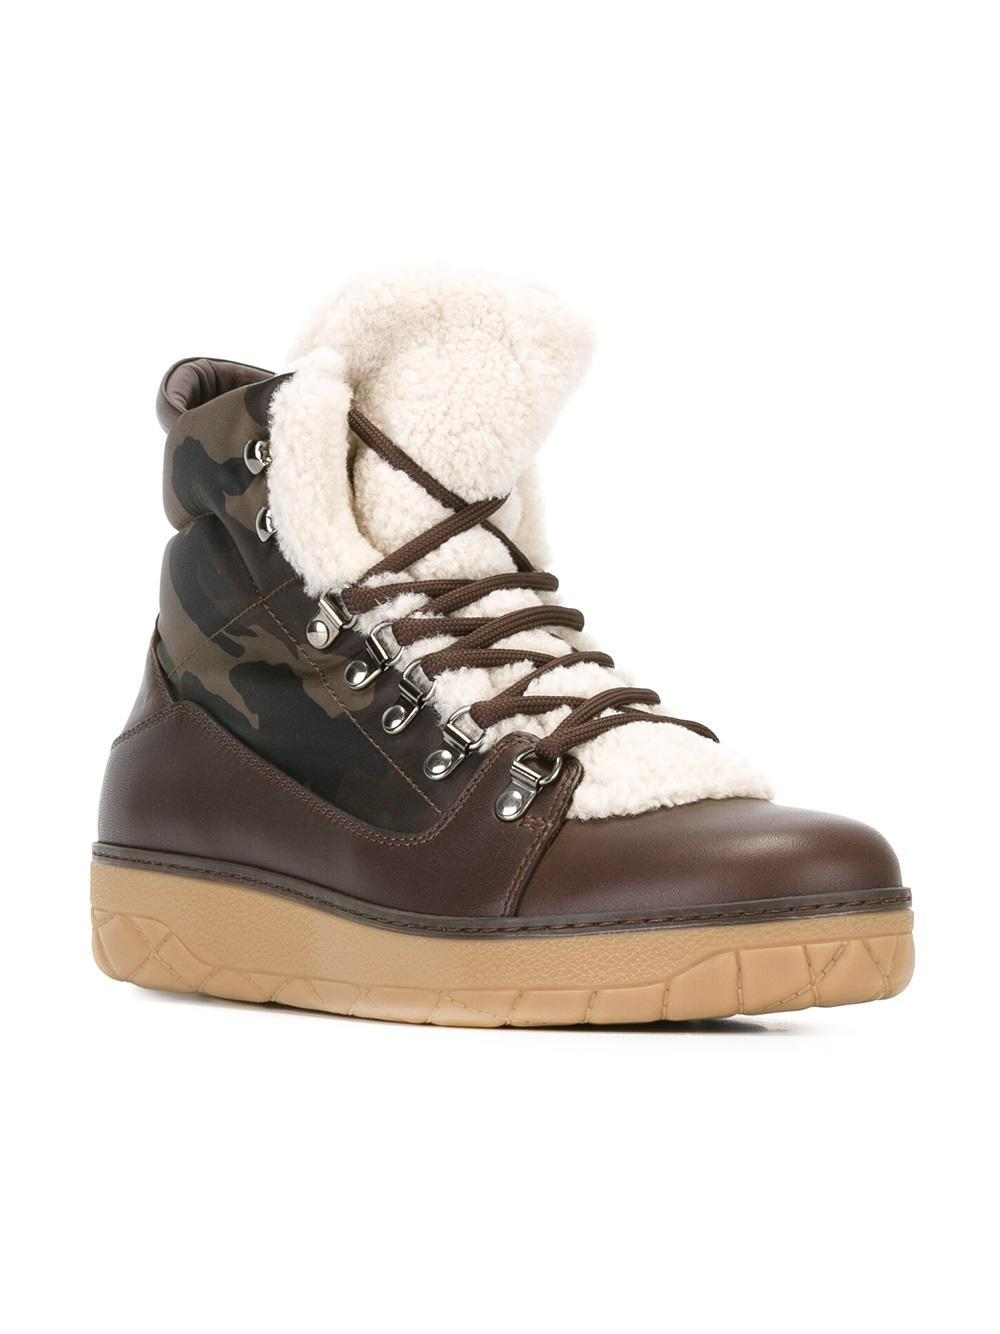 Moncler Aile Froide Ankle Boots In Brown For Men Lyst